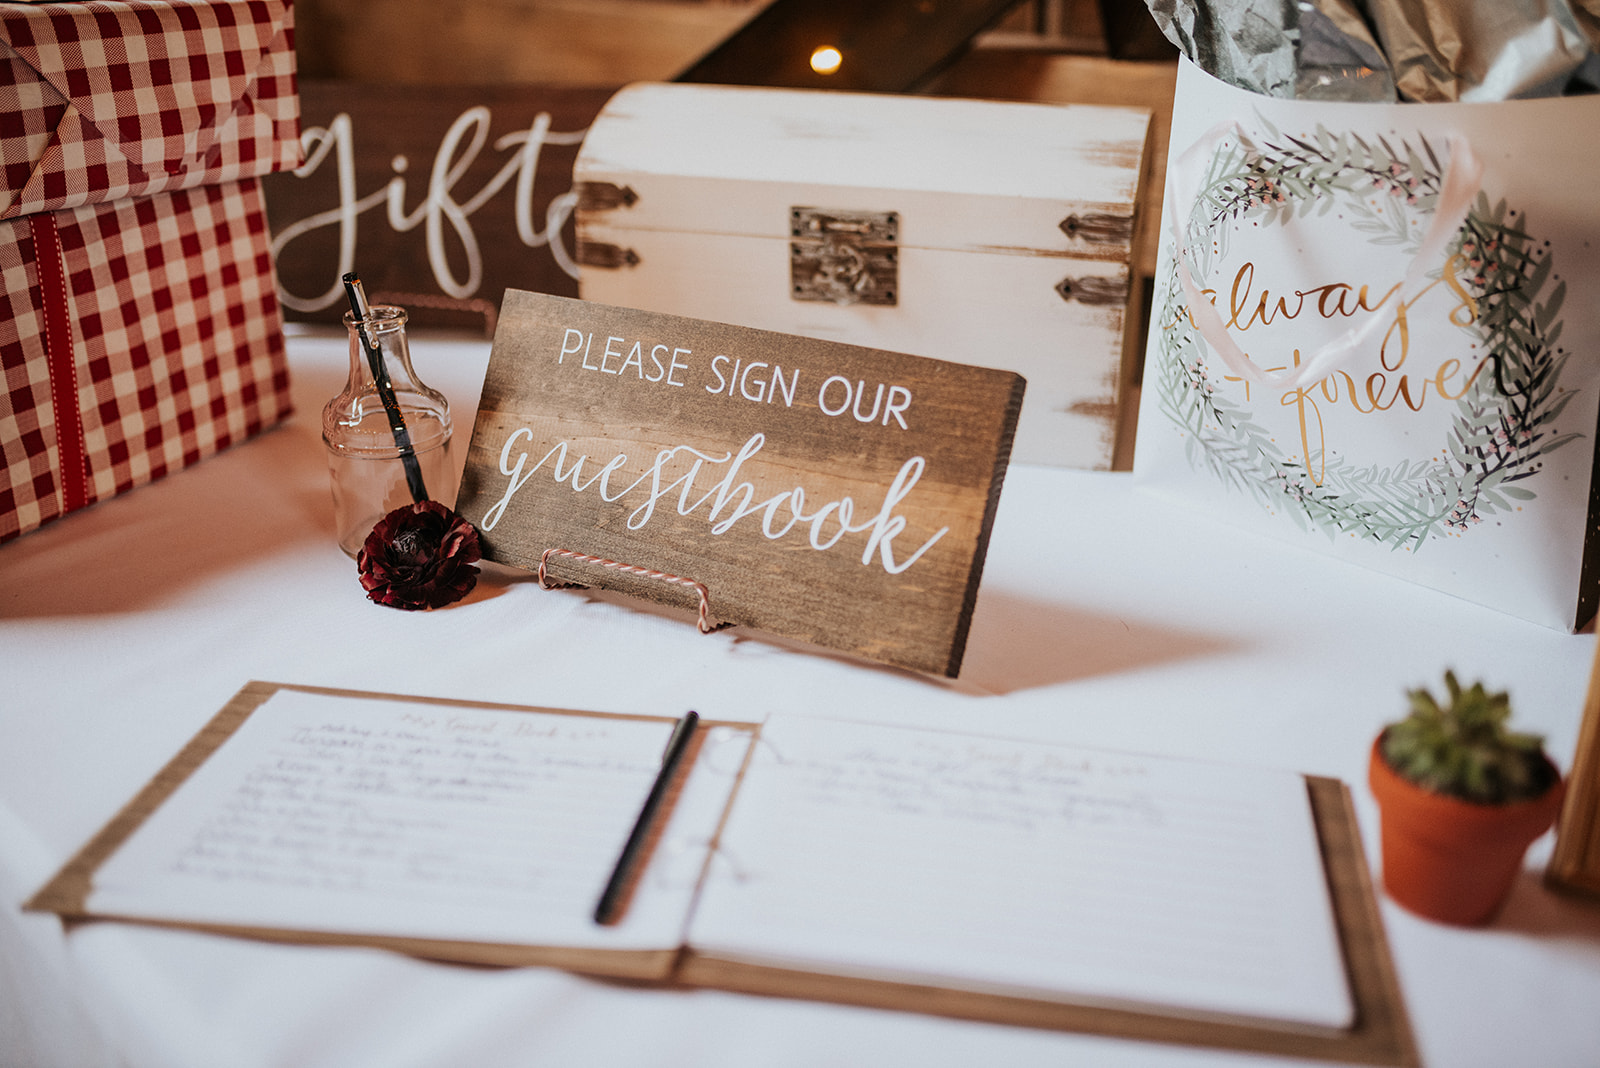 overthevineswisconsinwedding_1046.jpg